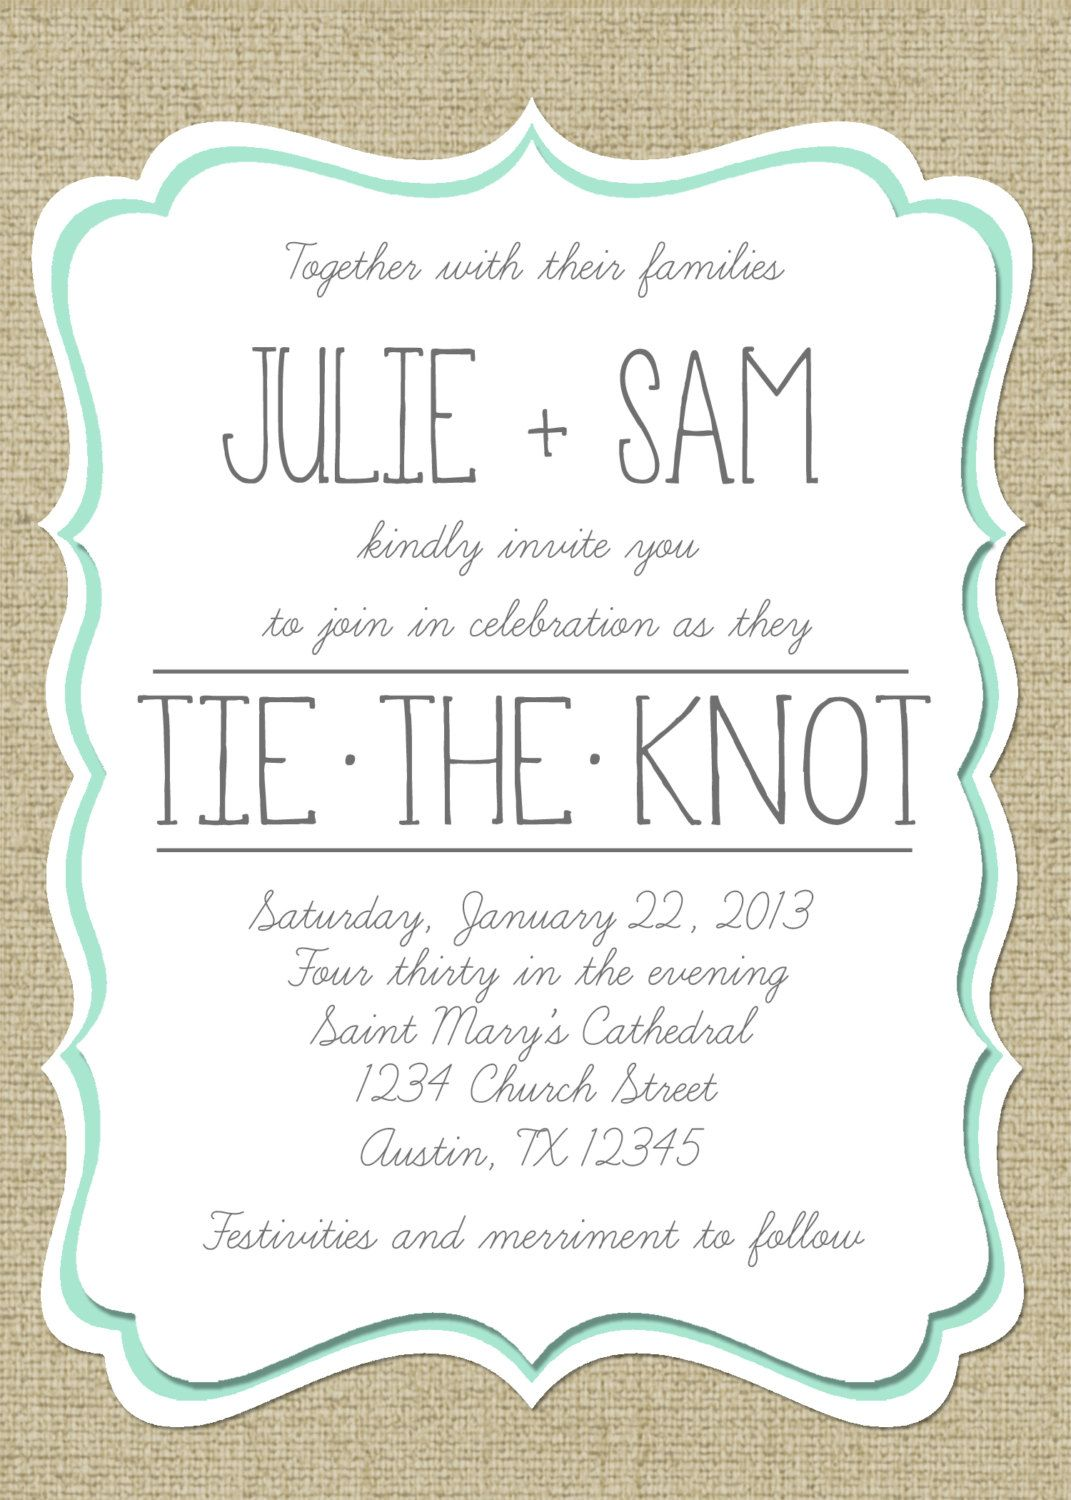 Vintage burlap wedding invitation can be made into bridal shower